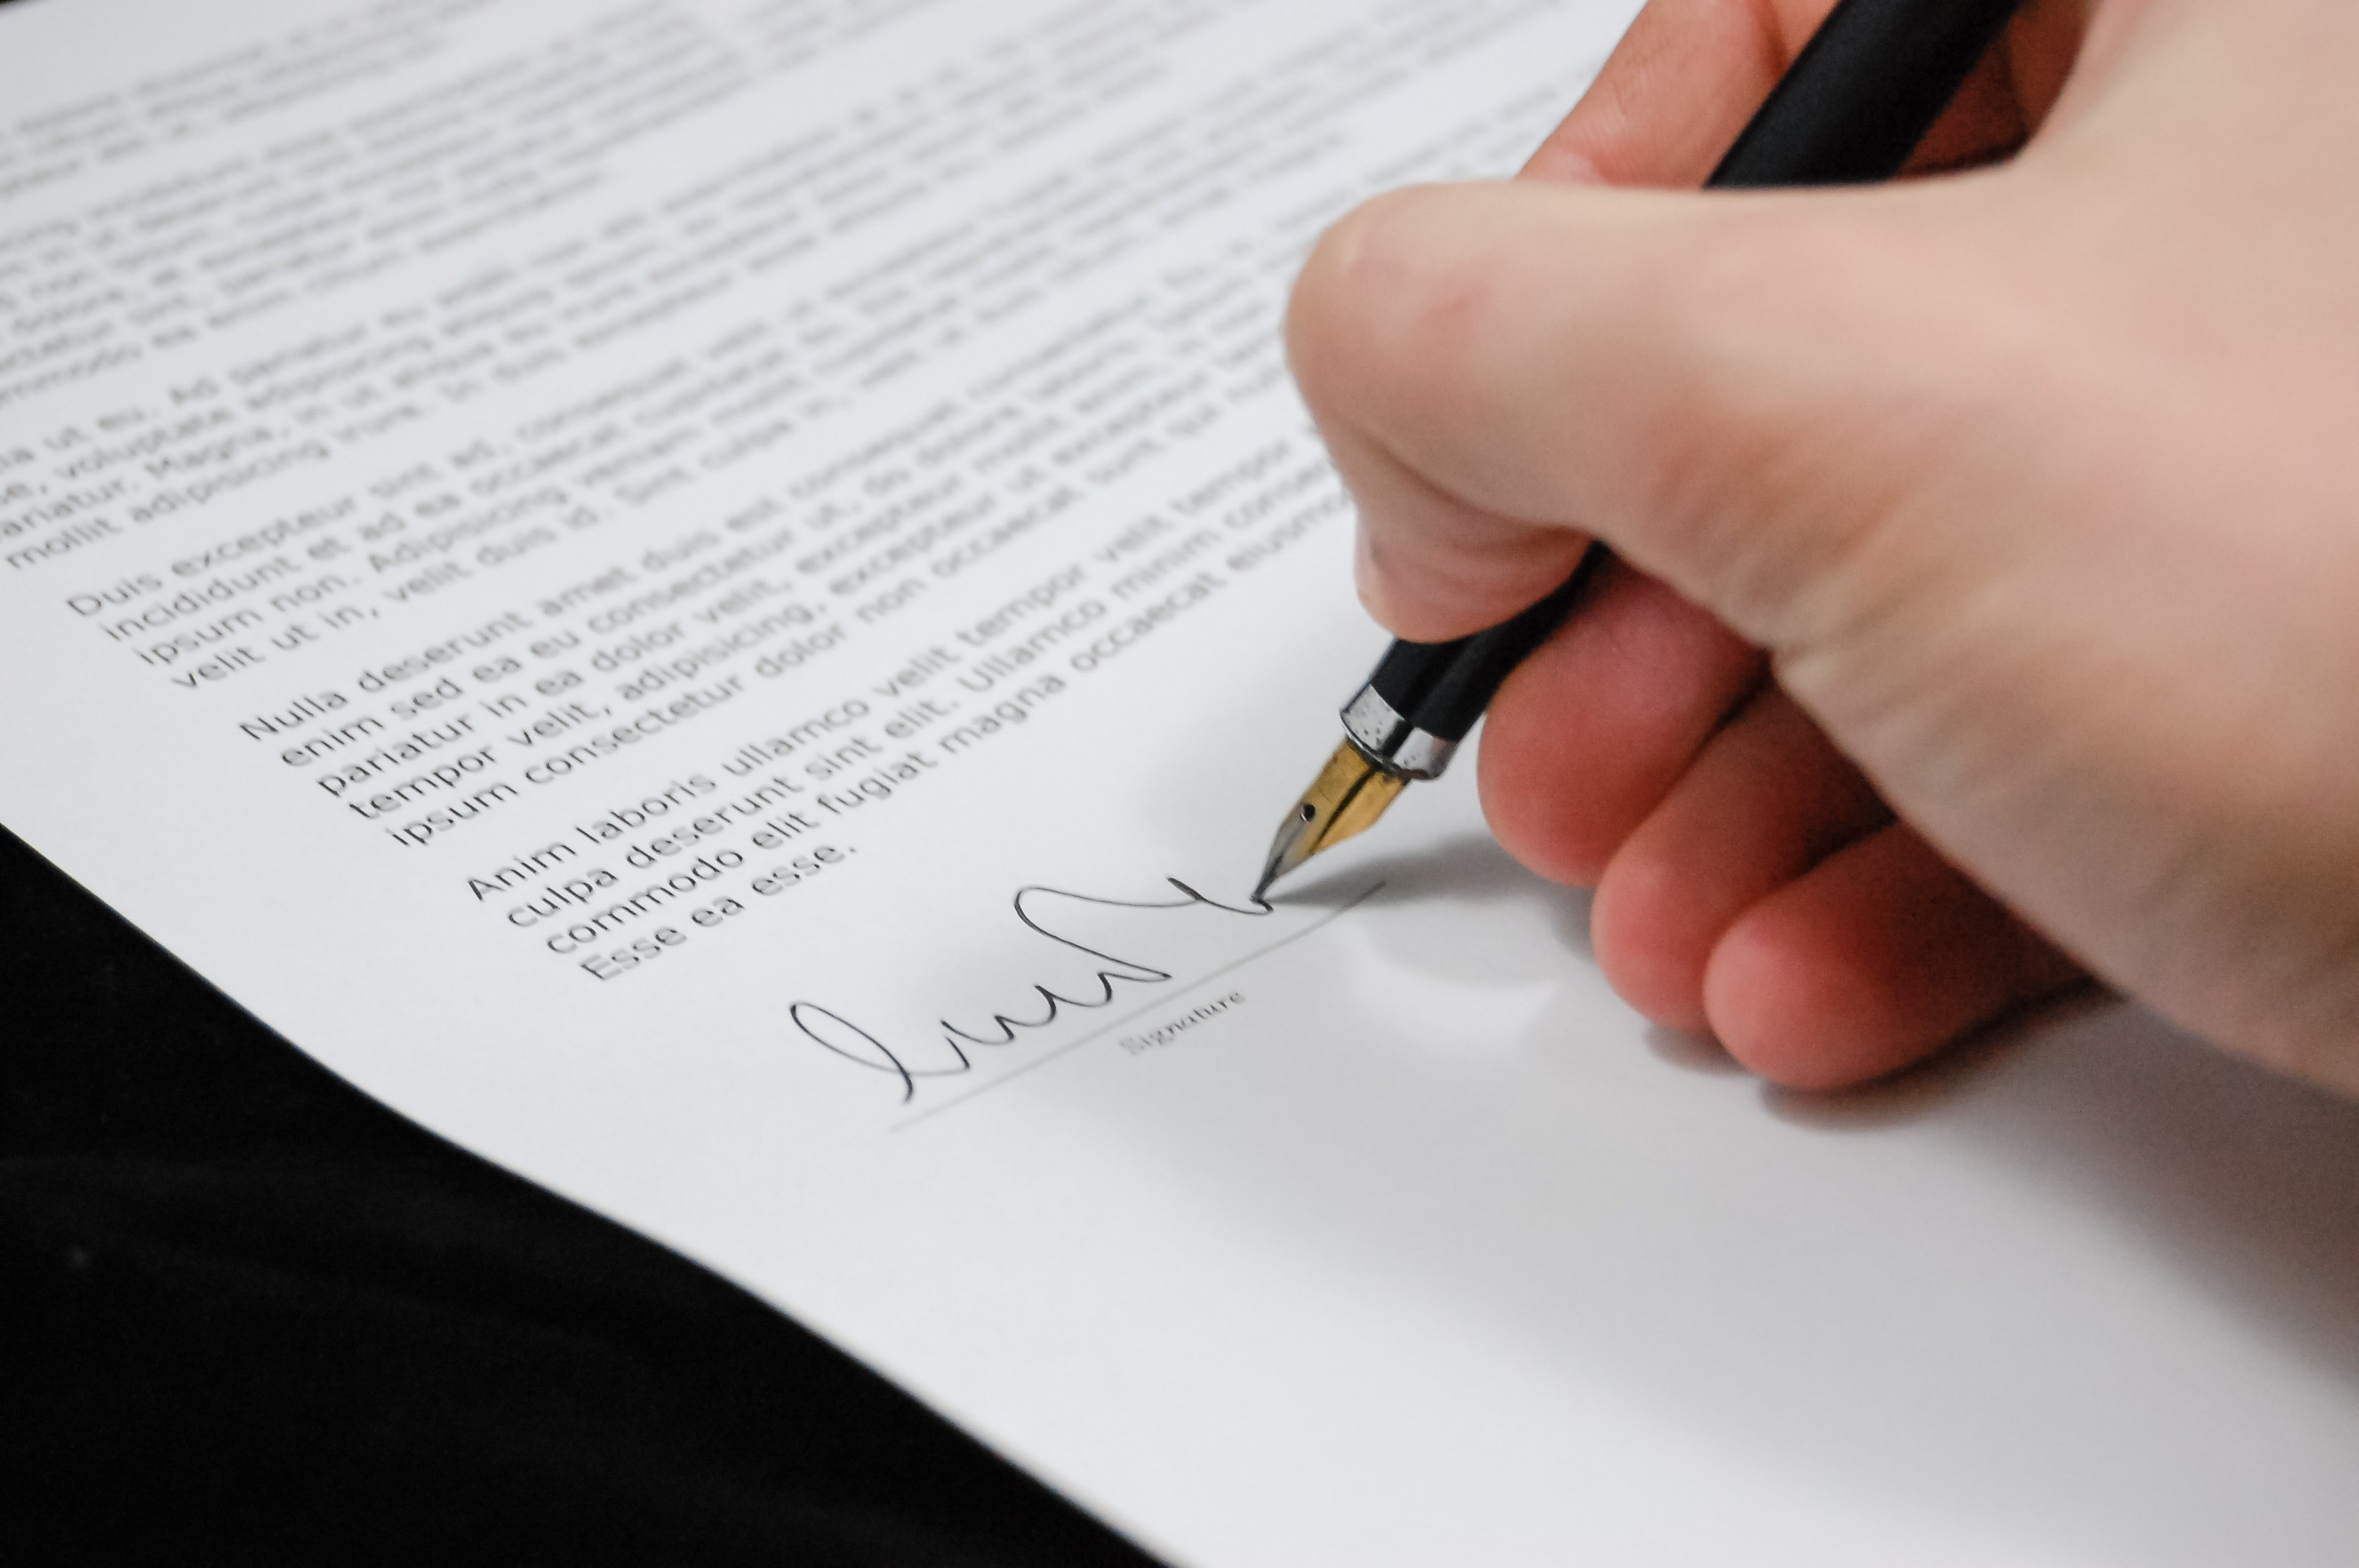 NEW YORK NEW JERSEY BREACH OF CONTRACT LAWYER